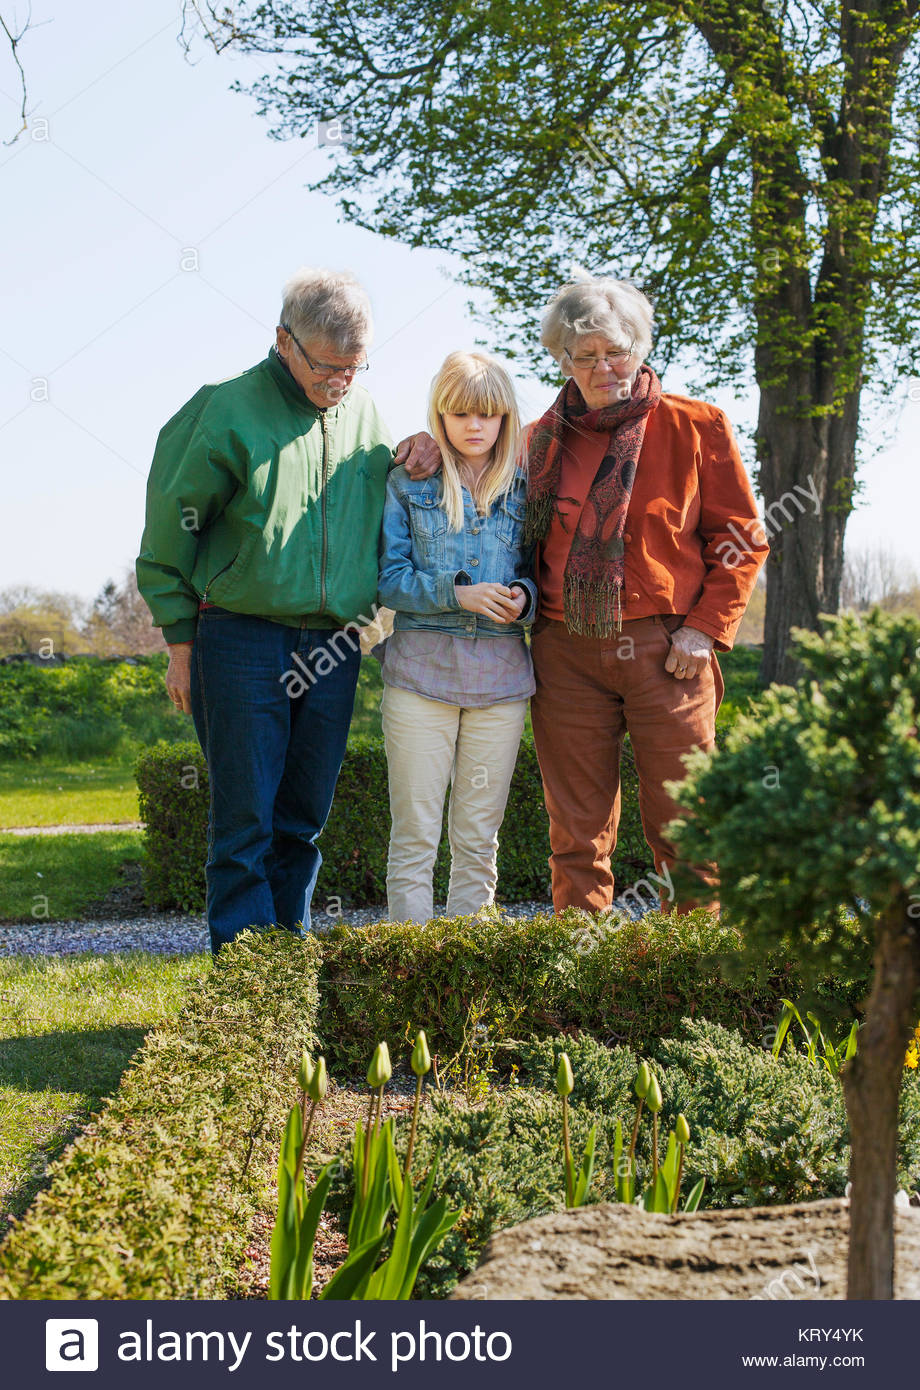 Girl and her grandparents in churchyard garden - Stock Image